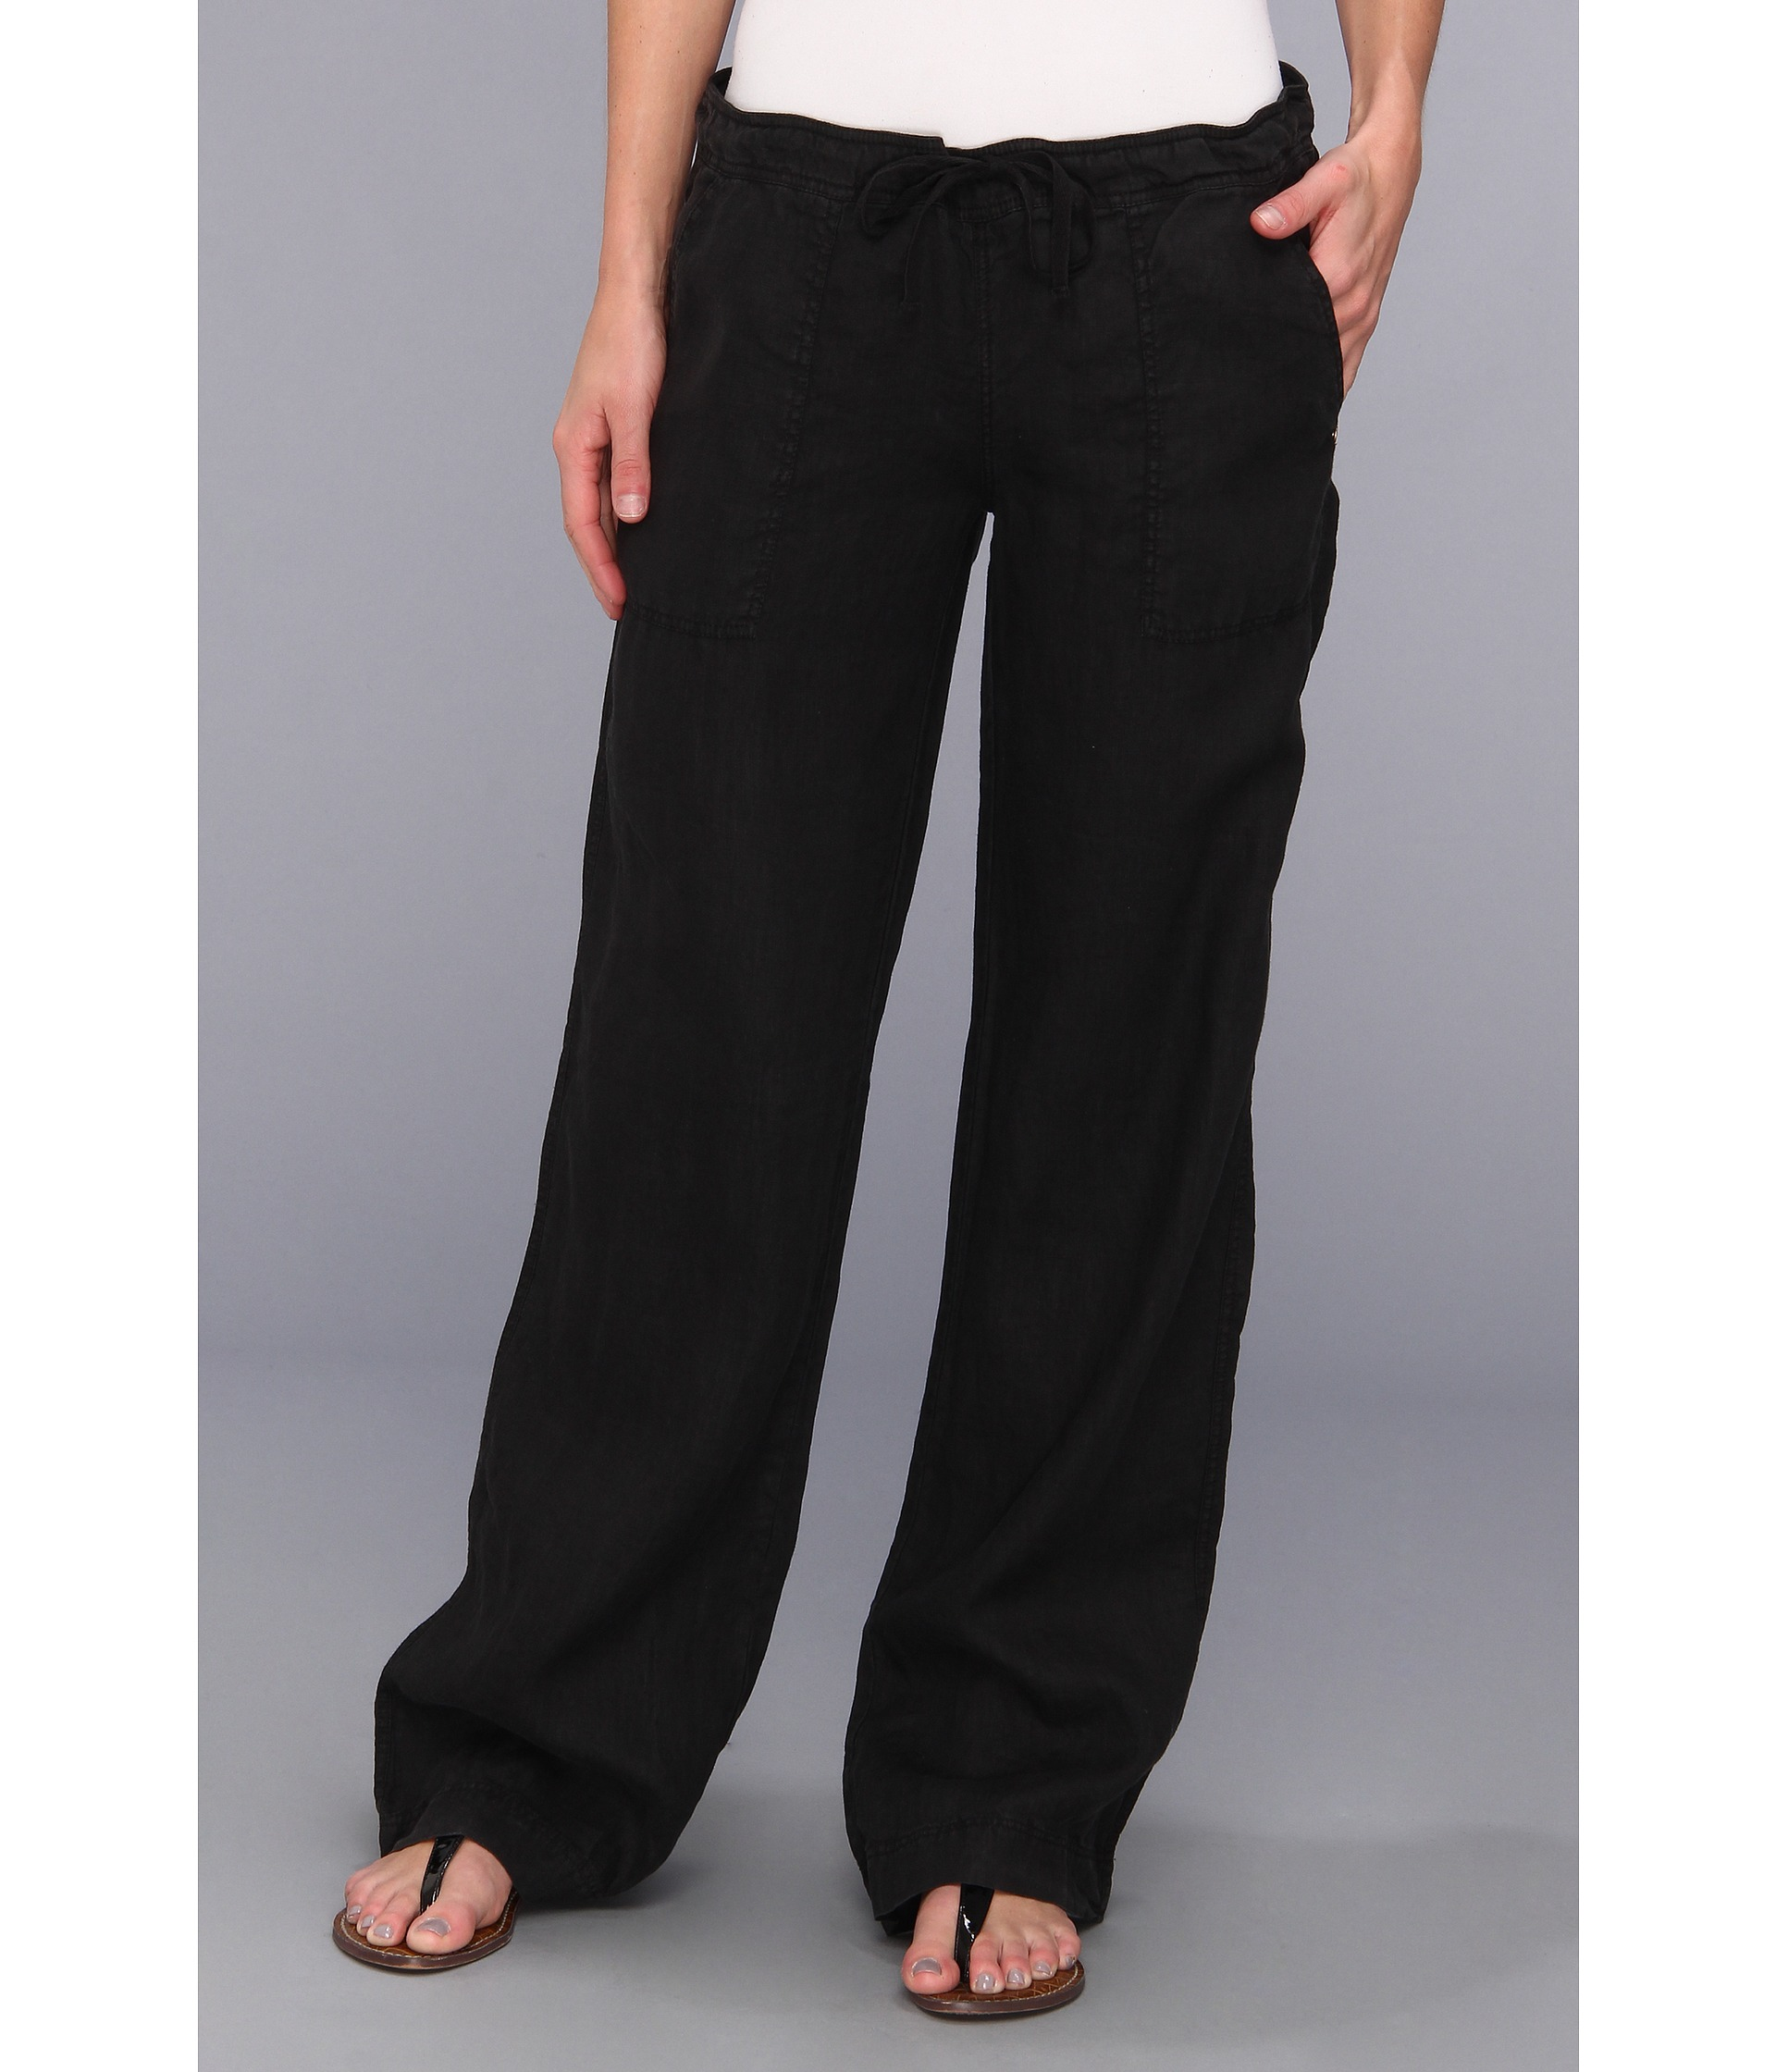 Innovative LA GOLD Women39s LinenCotton Drawstring Pants  13752862  Overstock